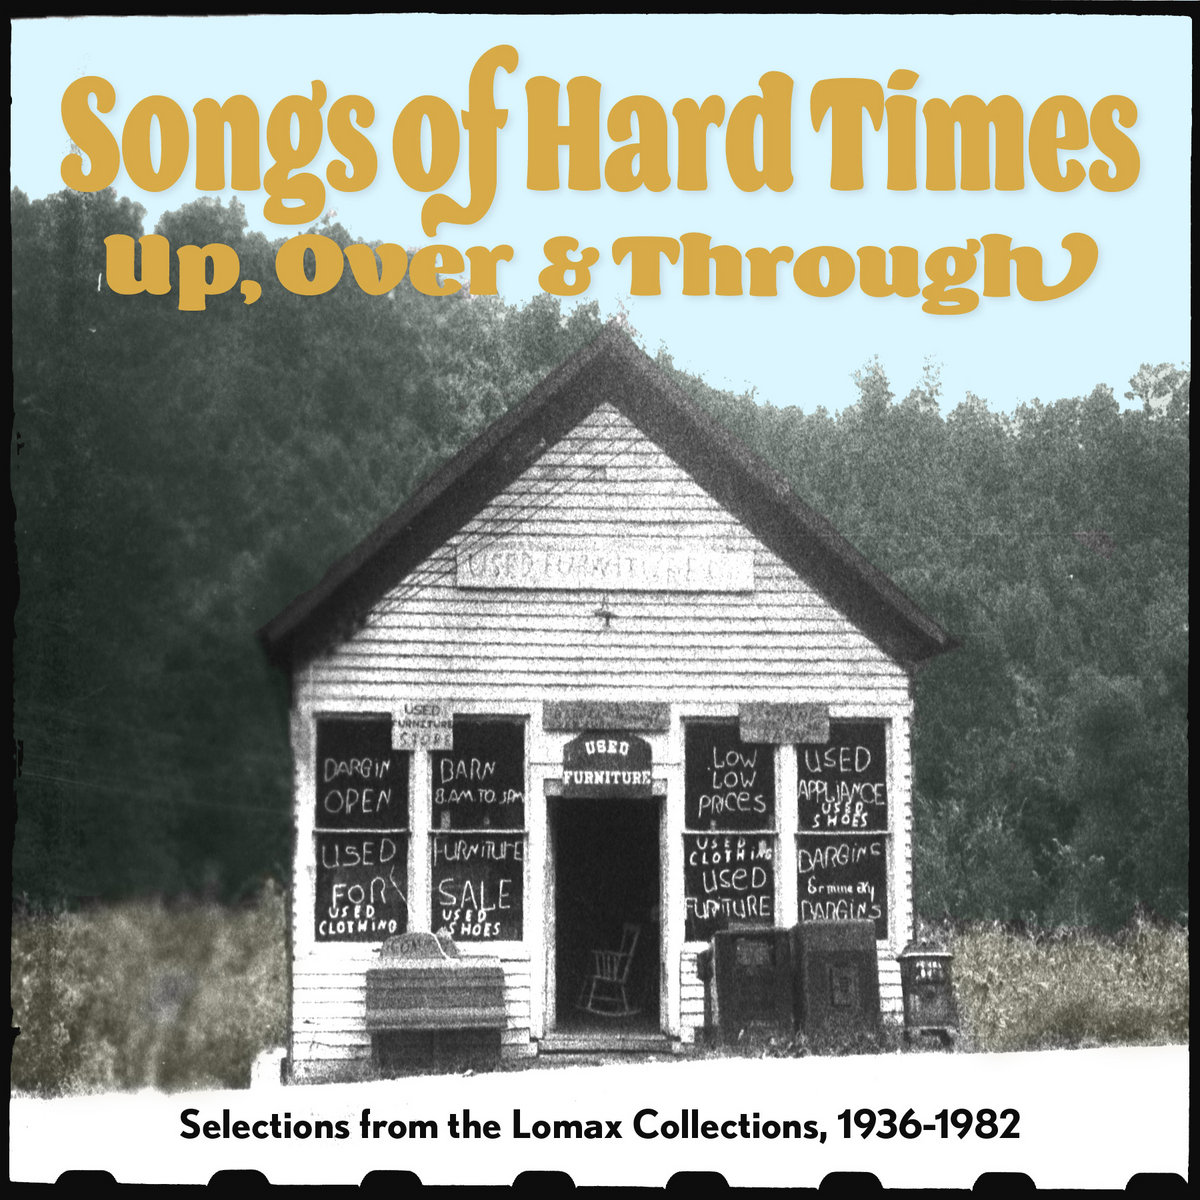 Songs of Hard Times